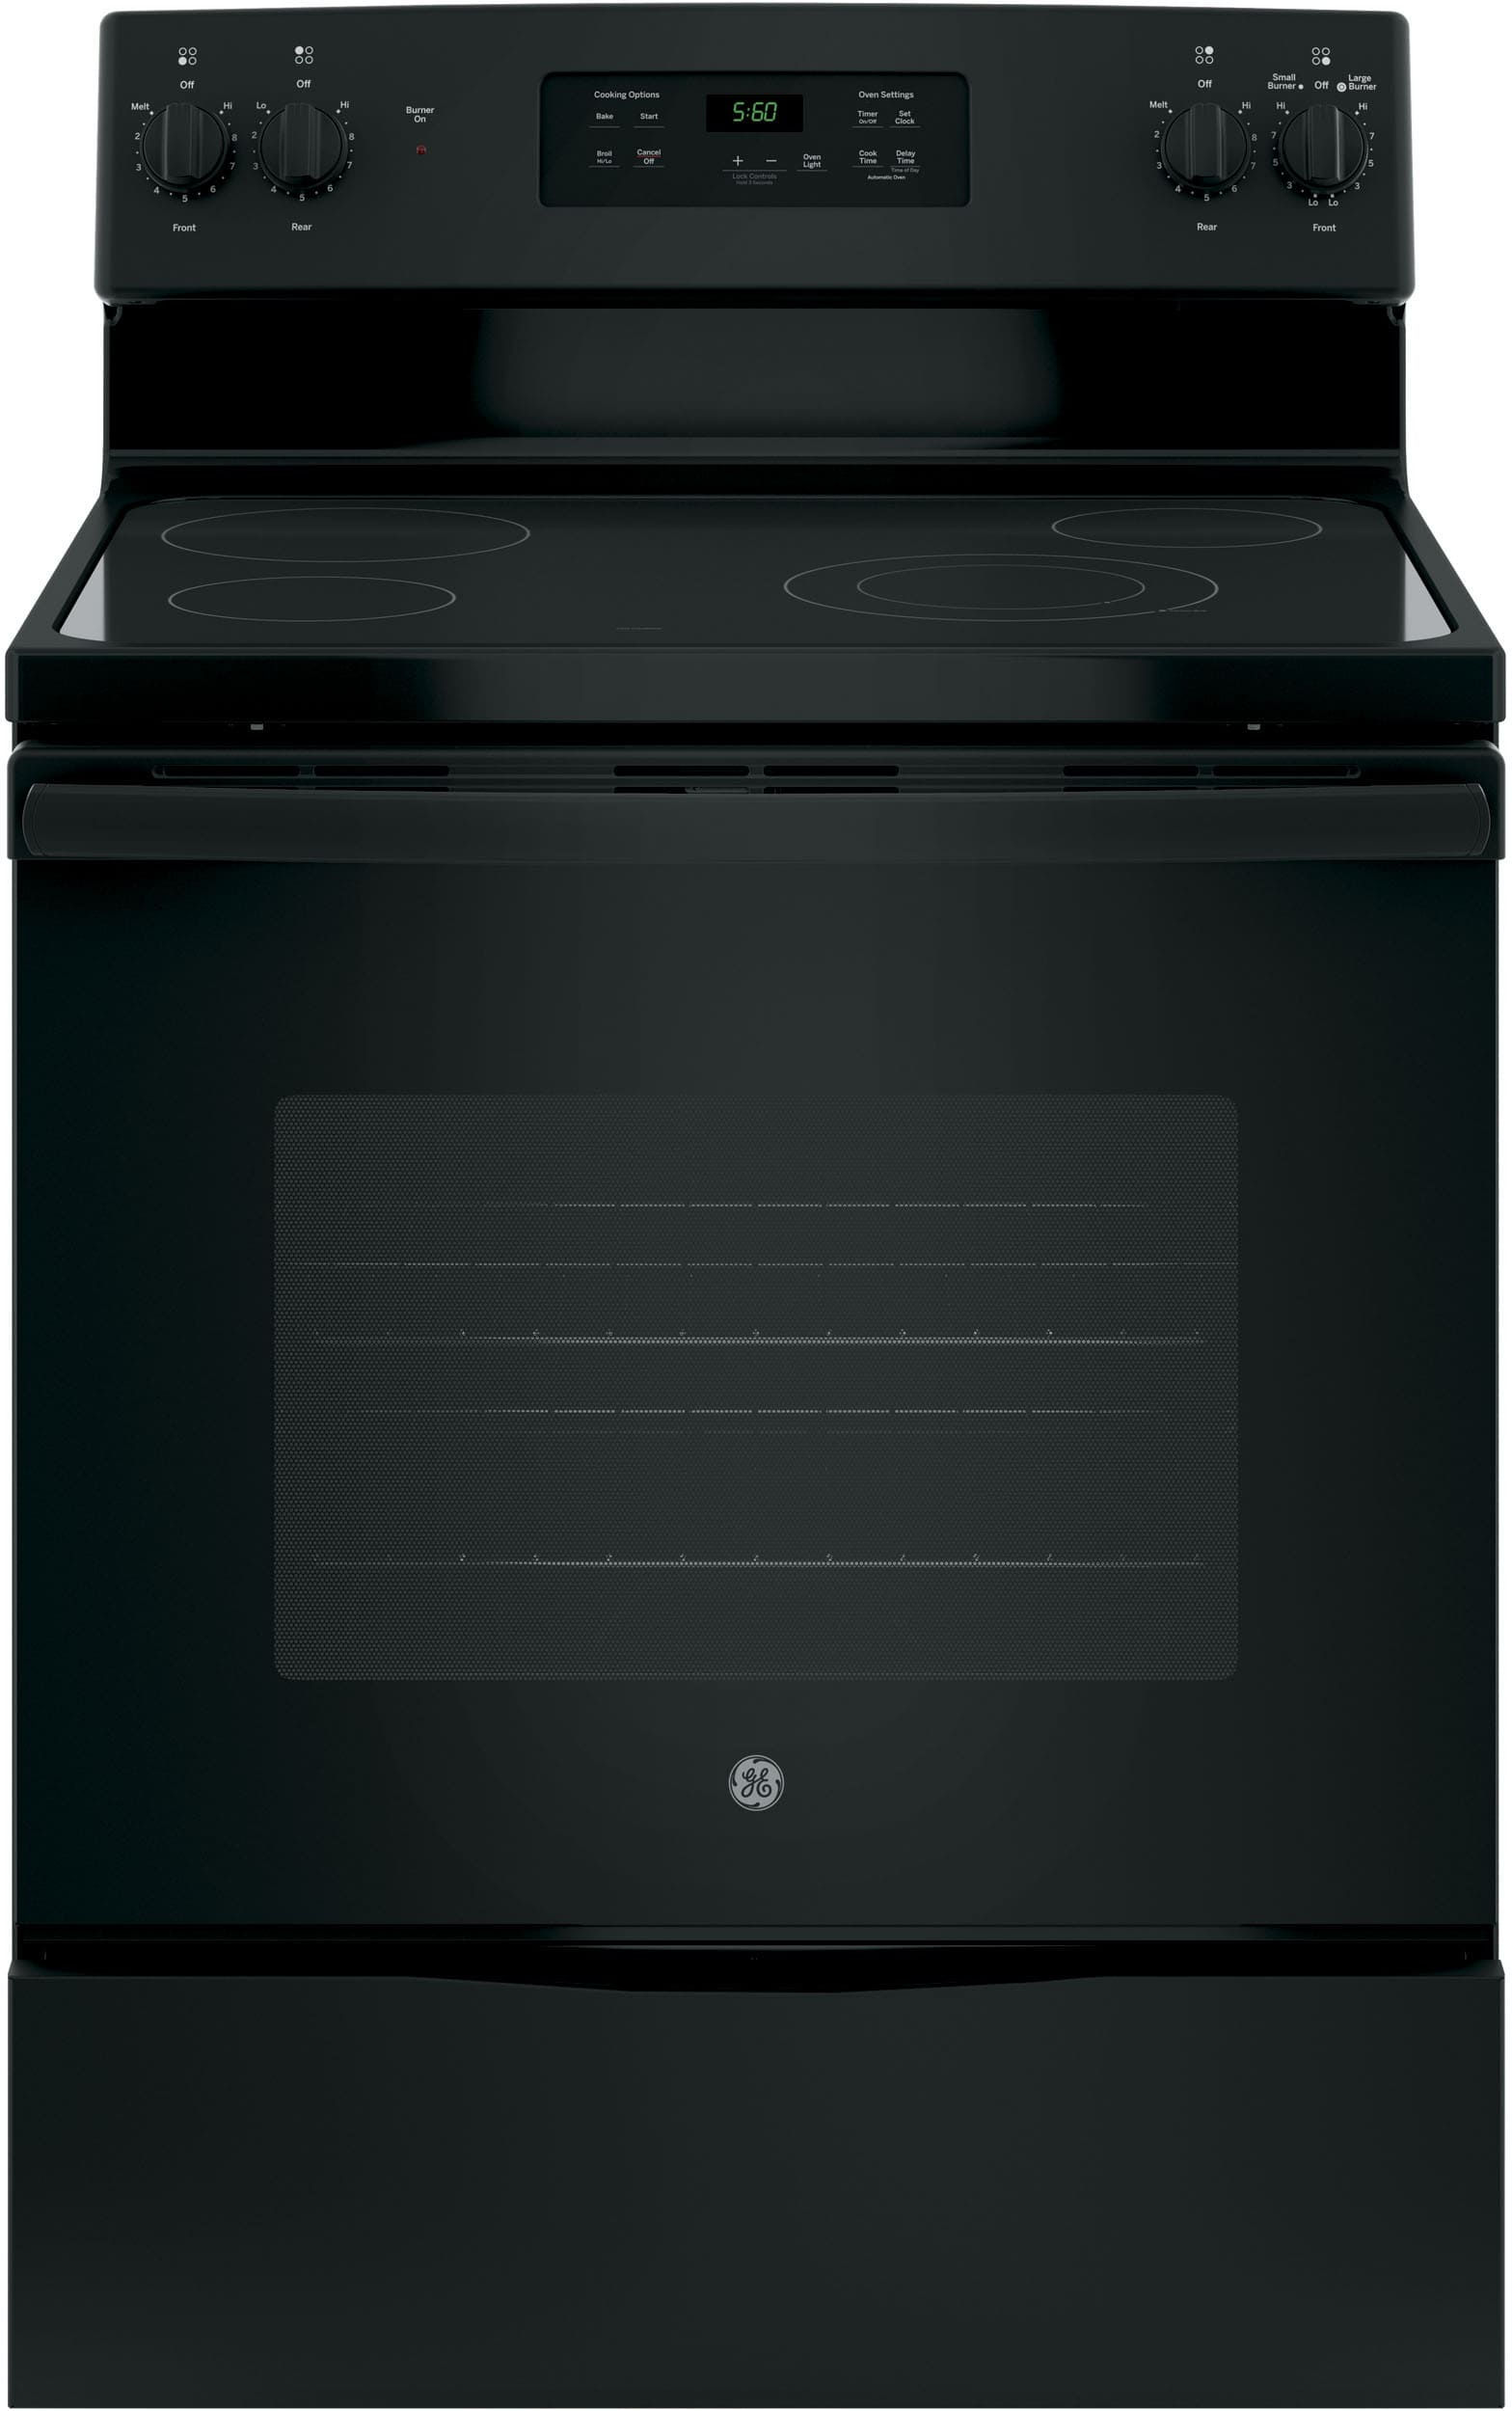 Ge Jbs60dkbb 30 Inch Electric Range With Power Boil Burner